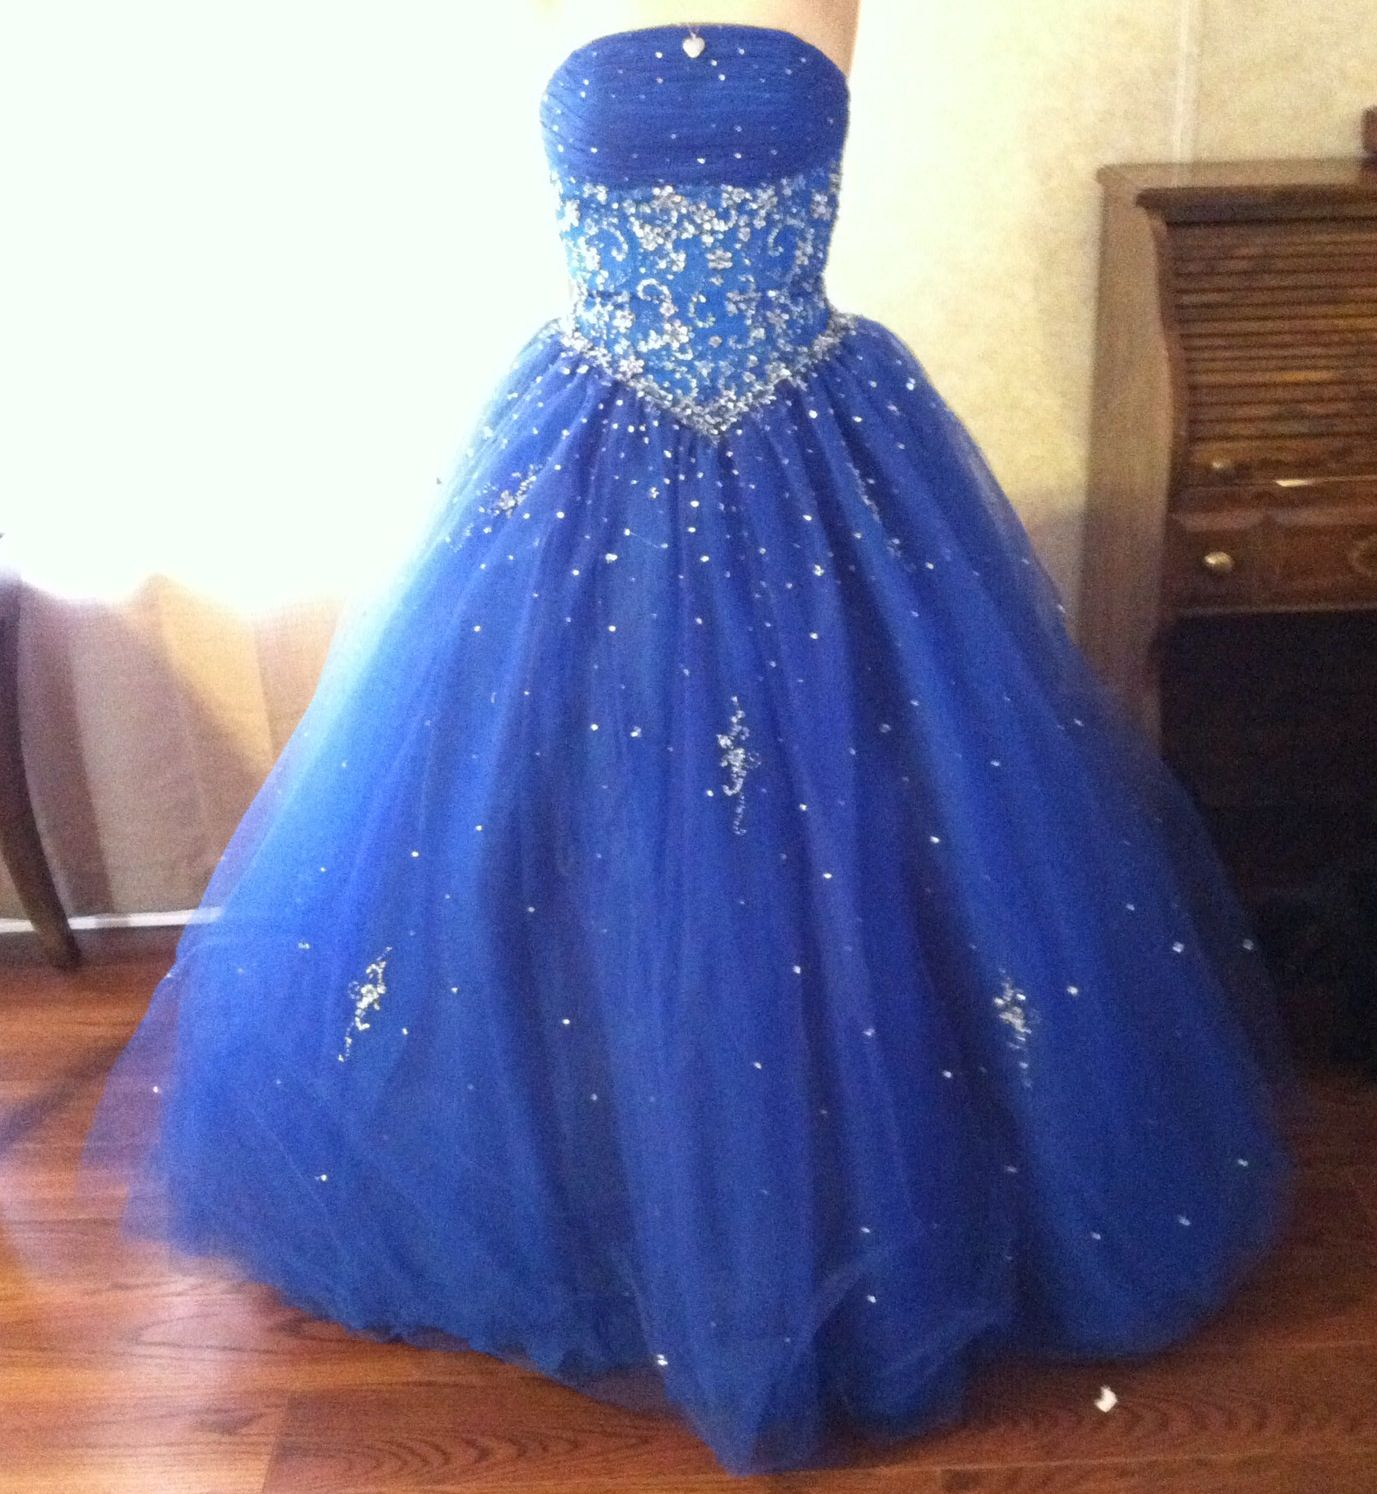 Size lace up back so can become bigger prom dress for sell